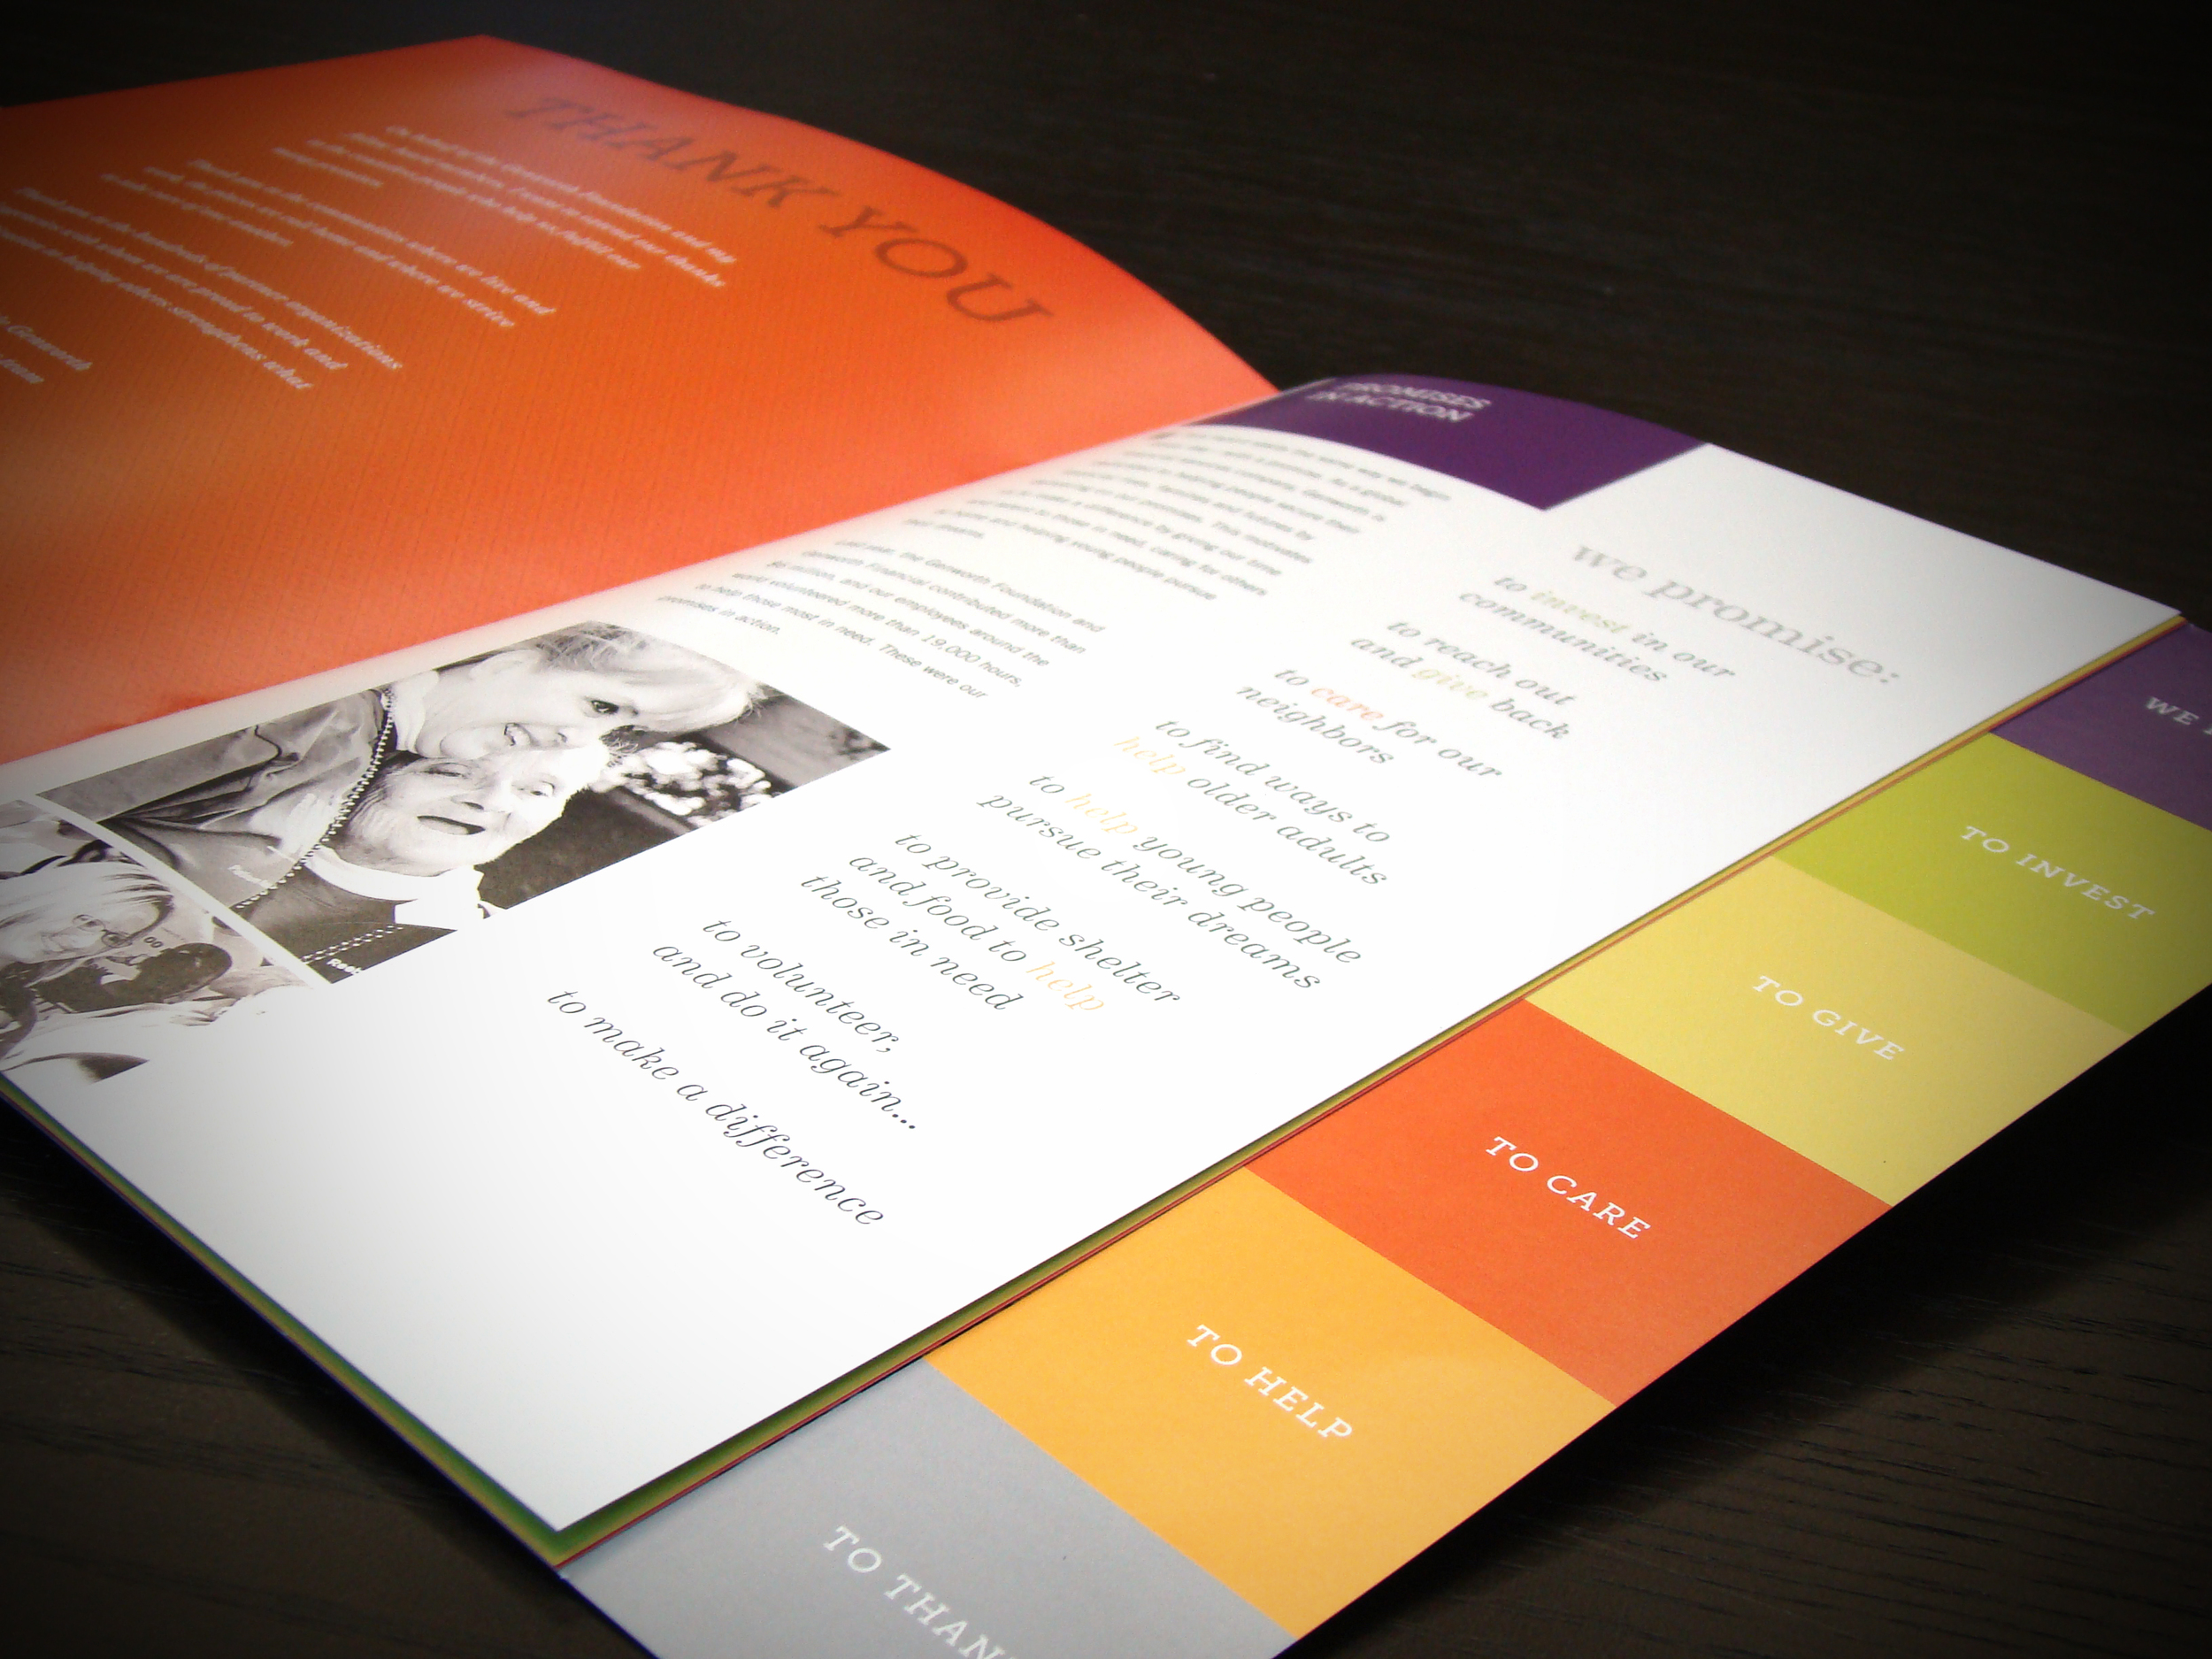 Genworth Foundation Annual Report Inside Front Cover